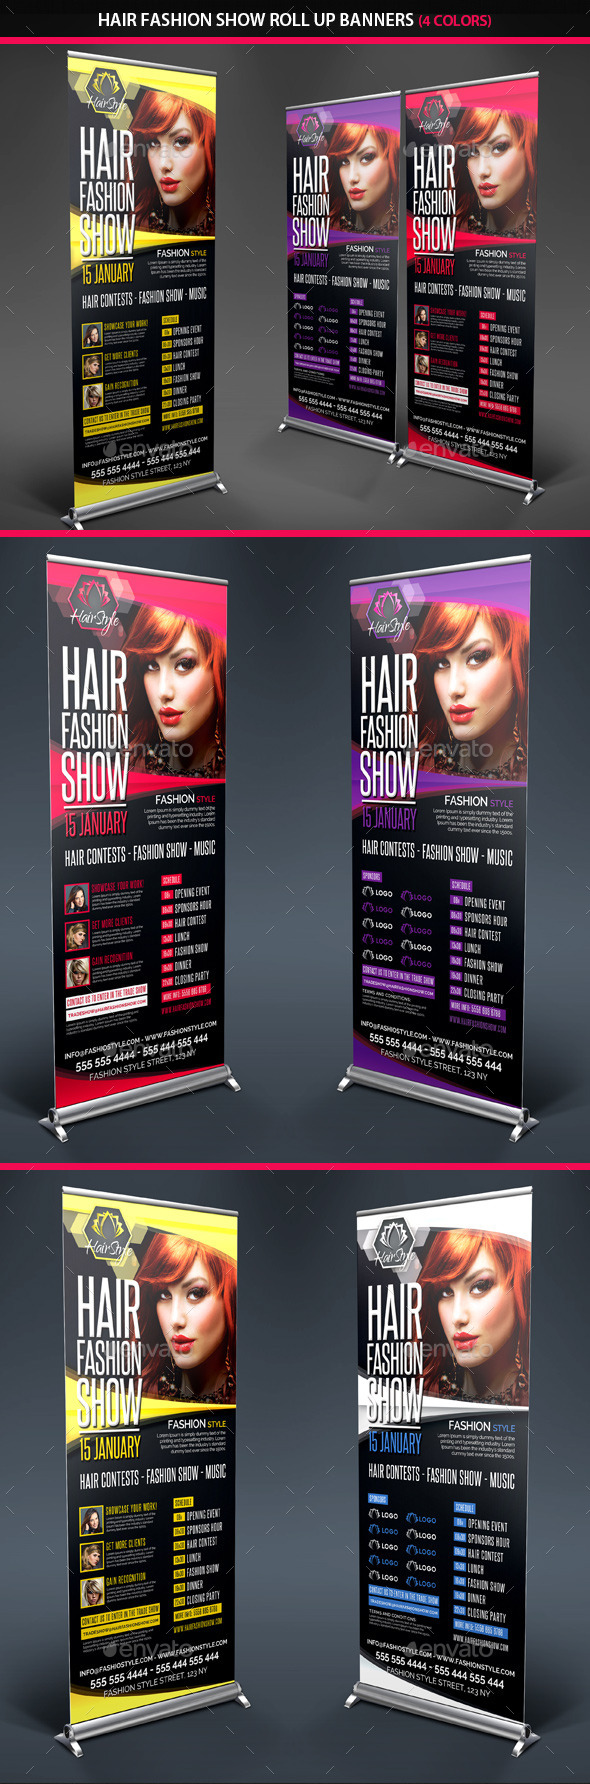 Hair Fashion Show Promotion Roll Up Banners - Signage Print Templates